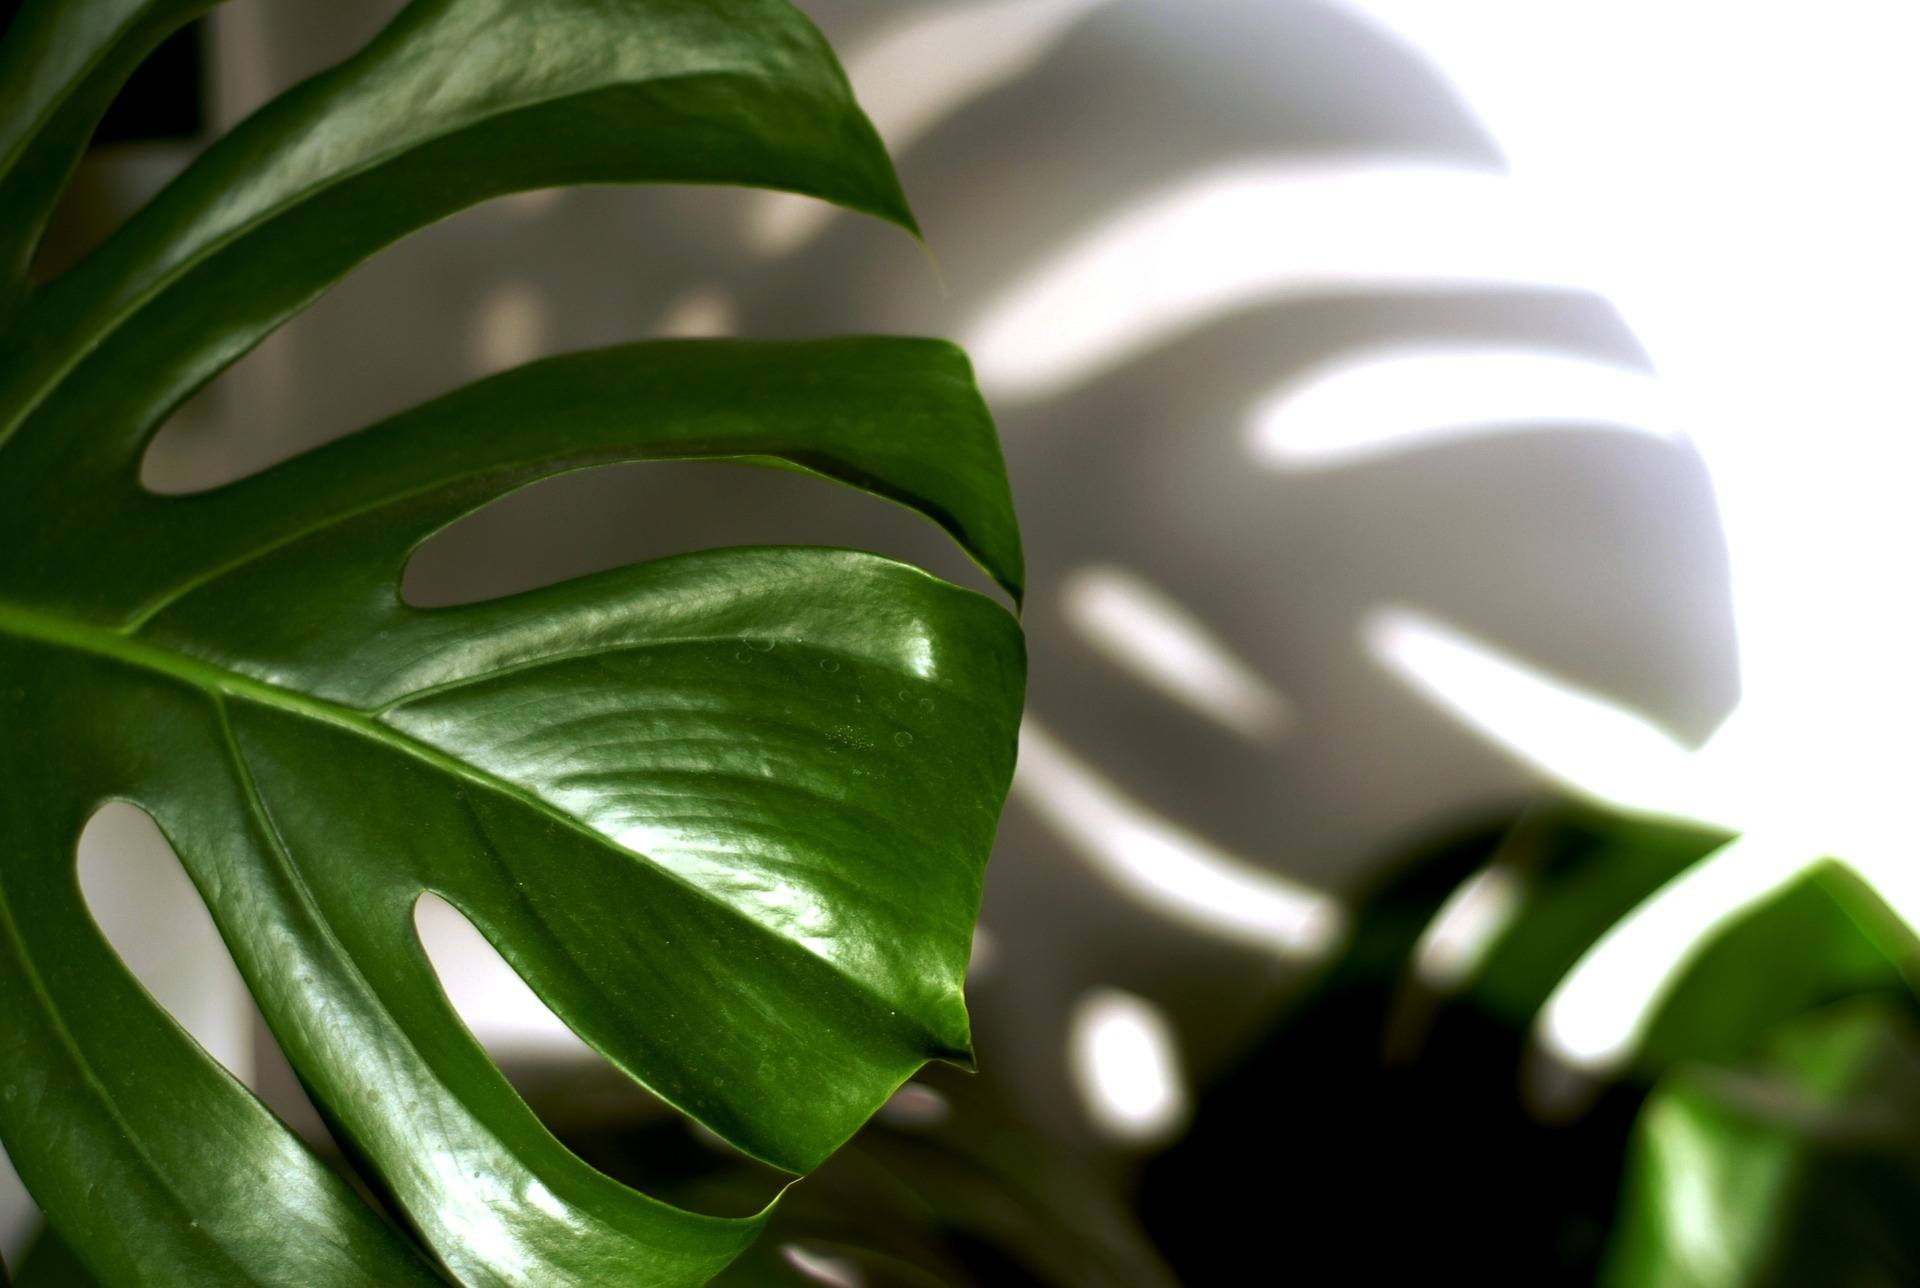 Close up photo of Philodendron plant.